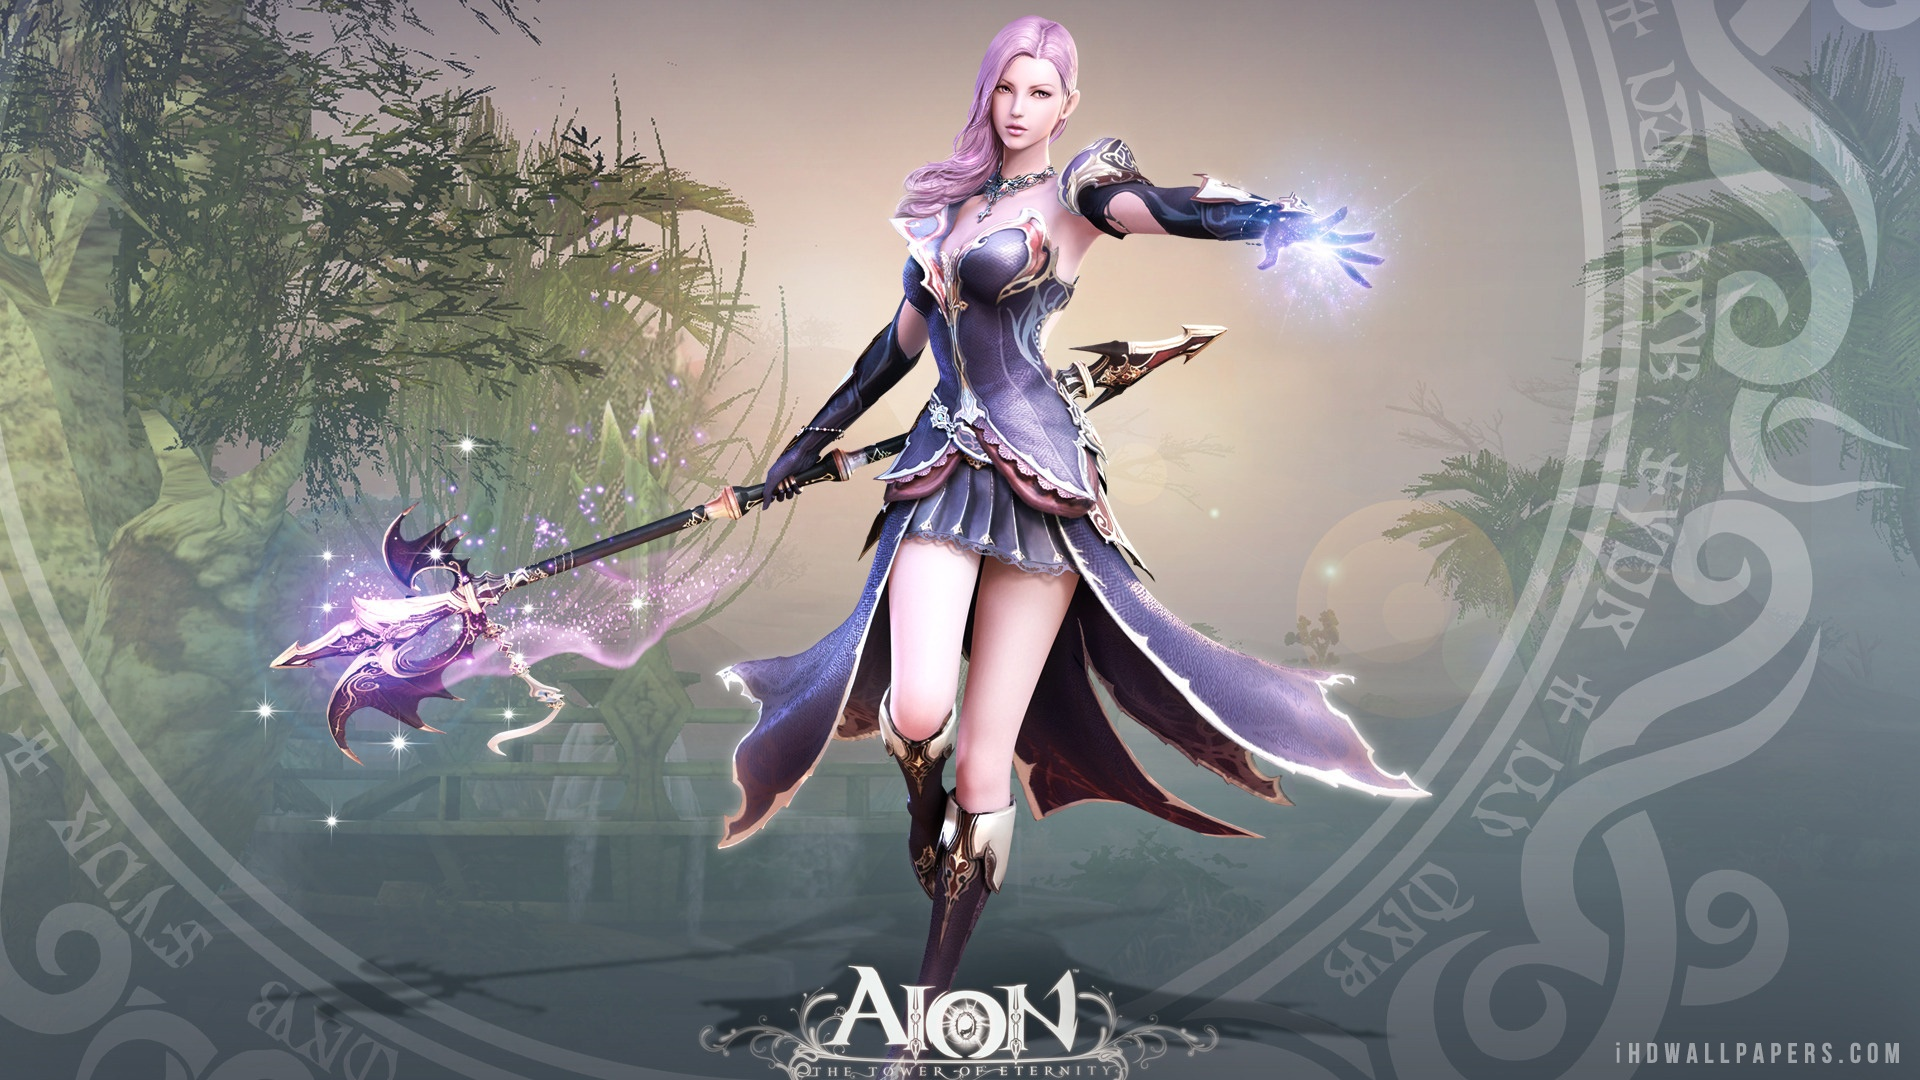 Aion Game Girl HD Wallpaper   iHD Wallpapers 1920x1080